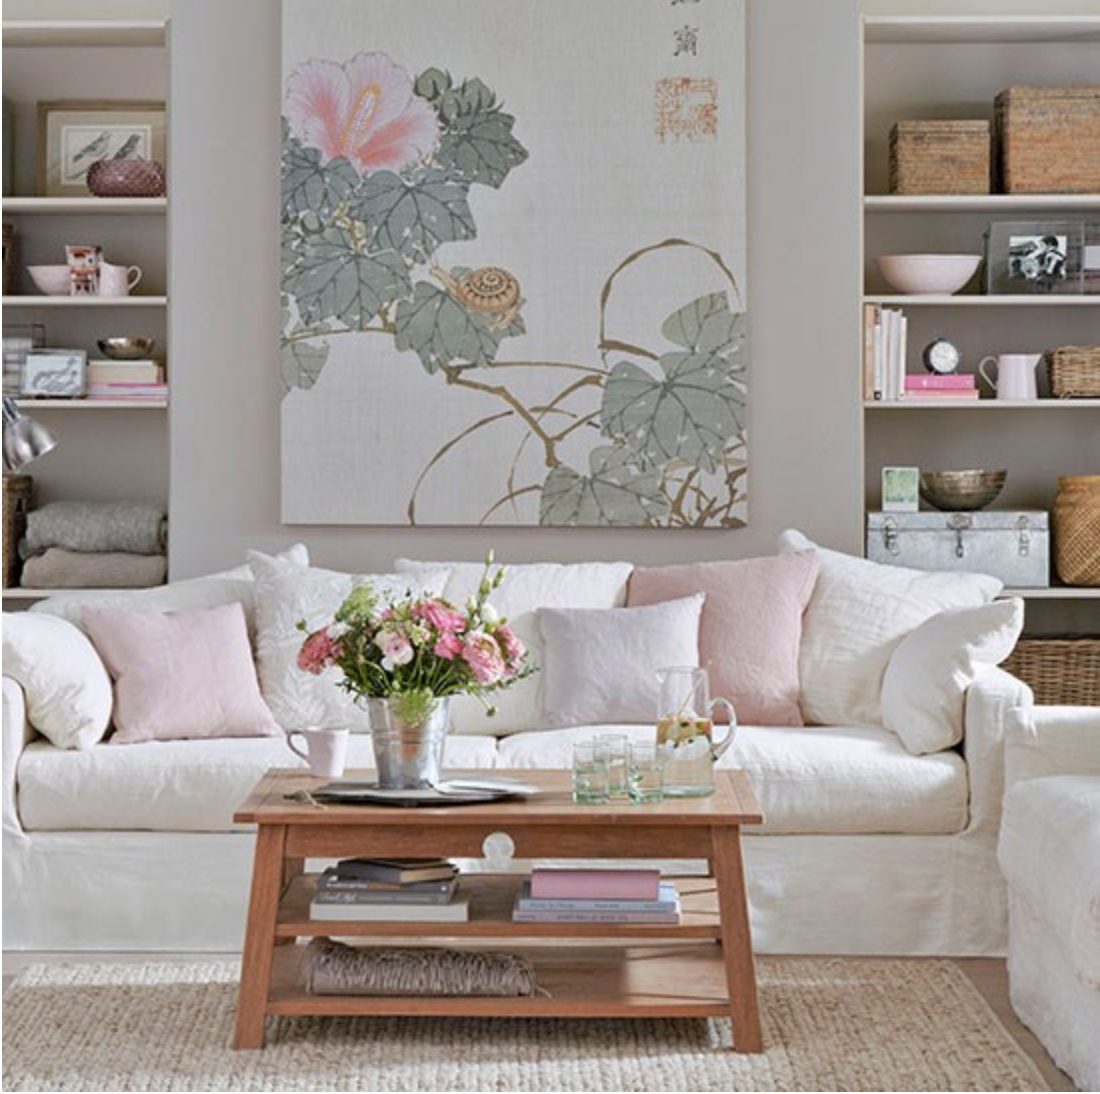 Salas pequenas romanticas e muito charmosas decorandoonline for Small front room ideas